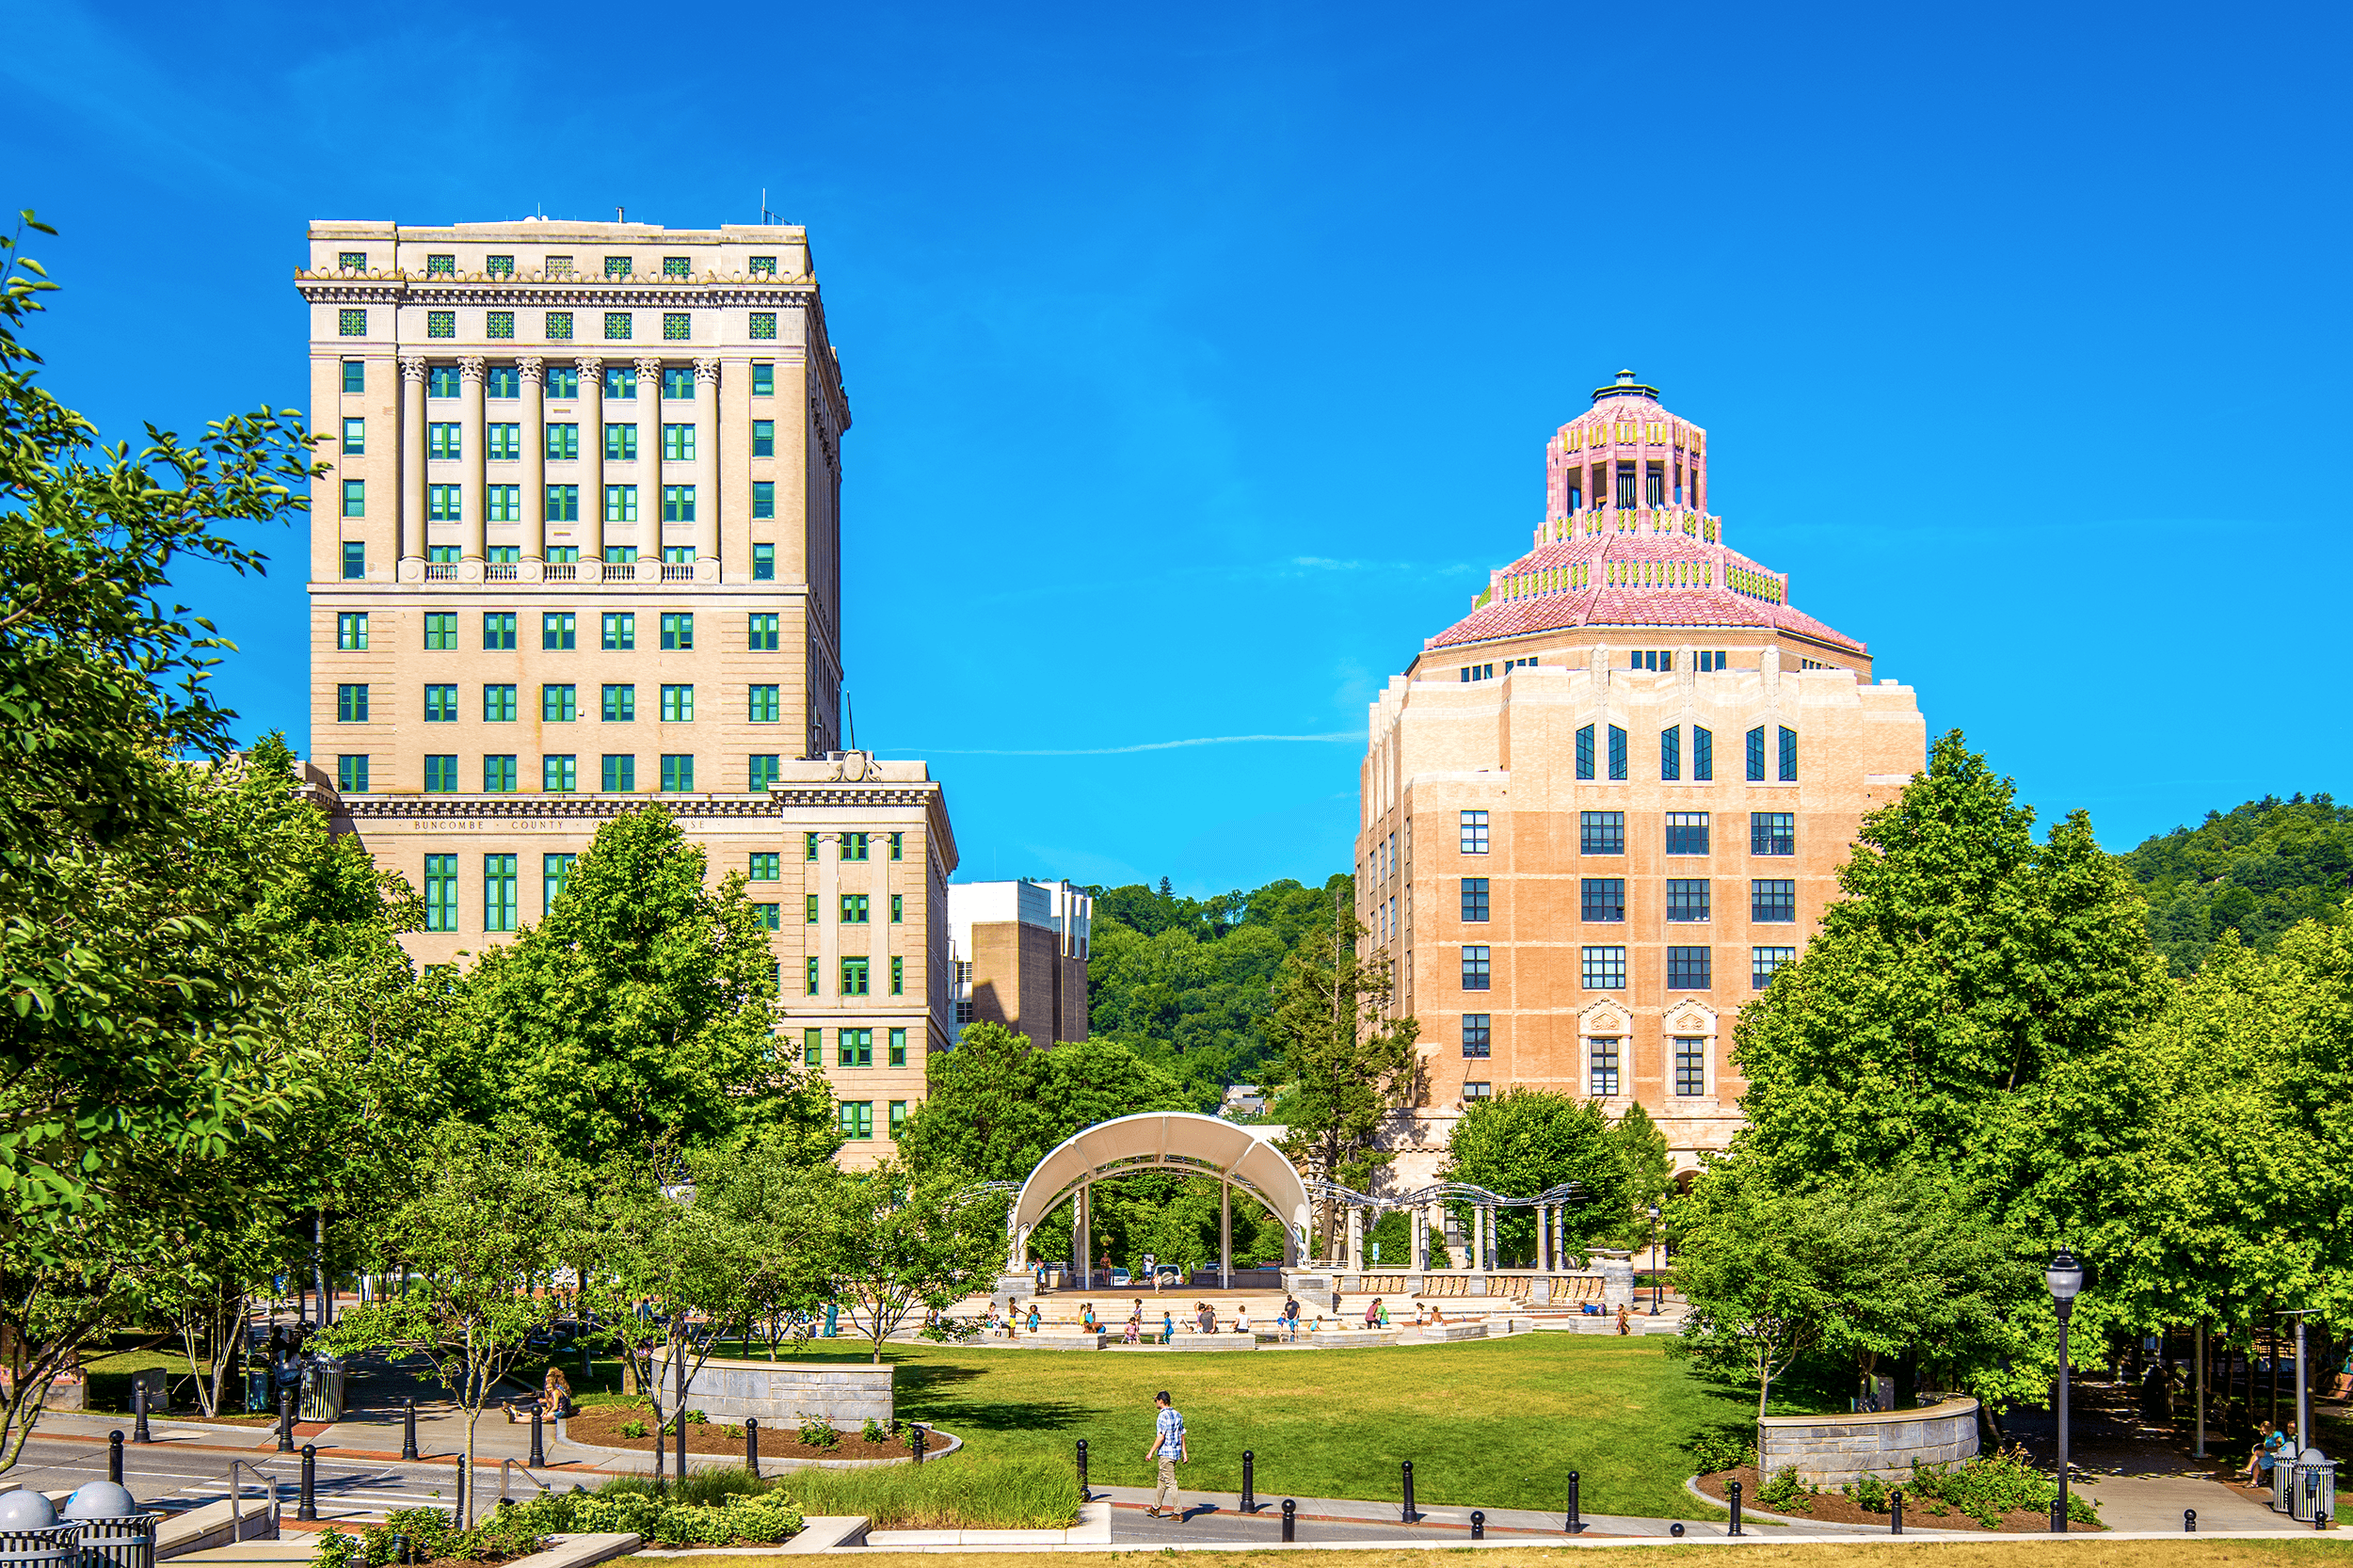 """Originally, Douglas Ellington had proposed that the Buncombe County Courthouse and the Asheville City Hall matched. The County Commissioners, however, found the Art Deco style """"ostentatious and preferred a more traditional approach."""" The result was a neo-classical building contrasting Ellington's Art Deco style City Hall."""